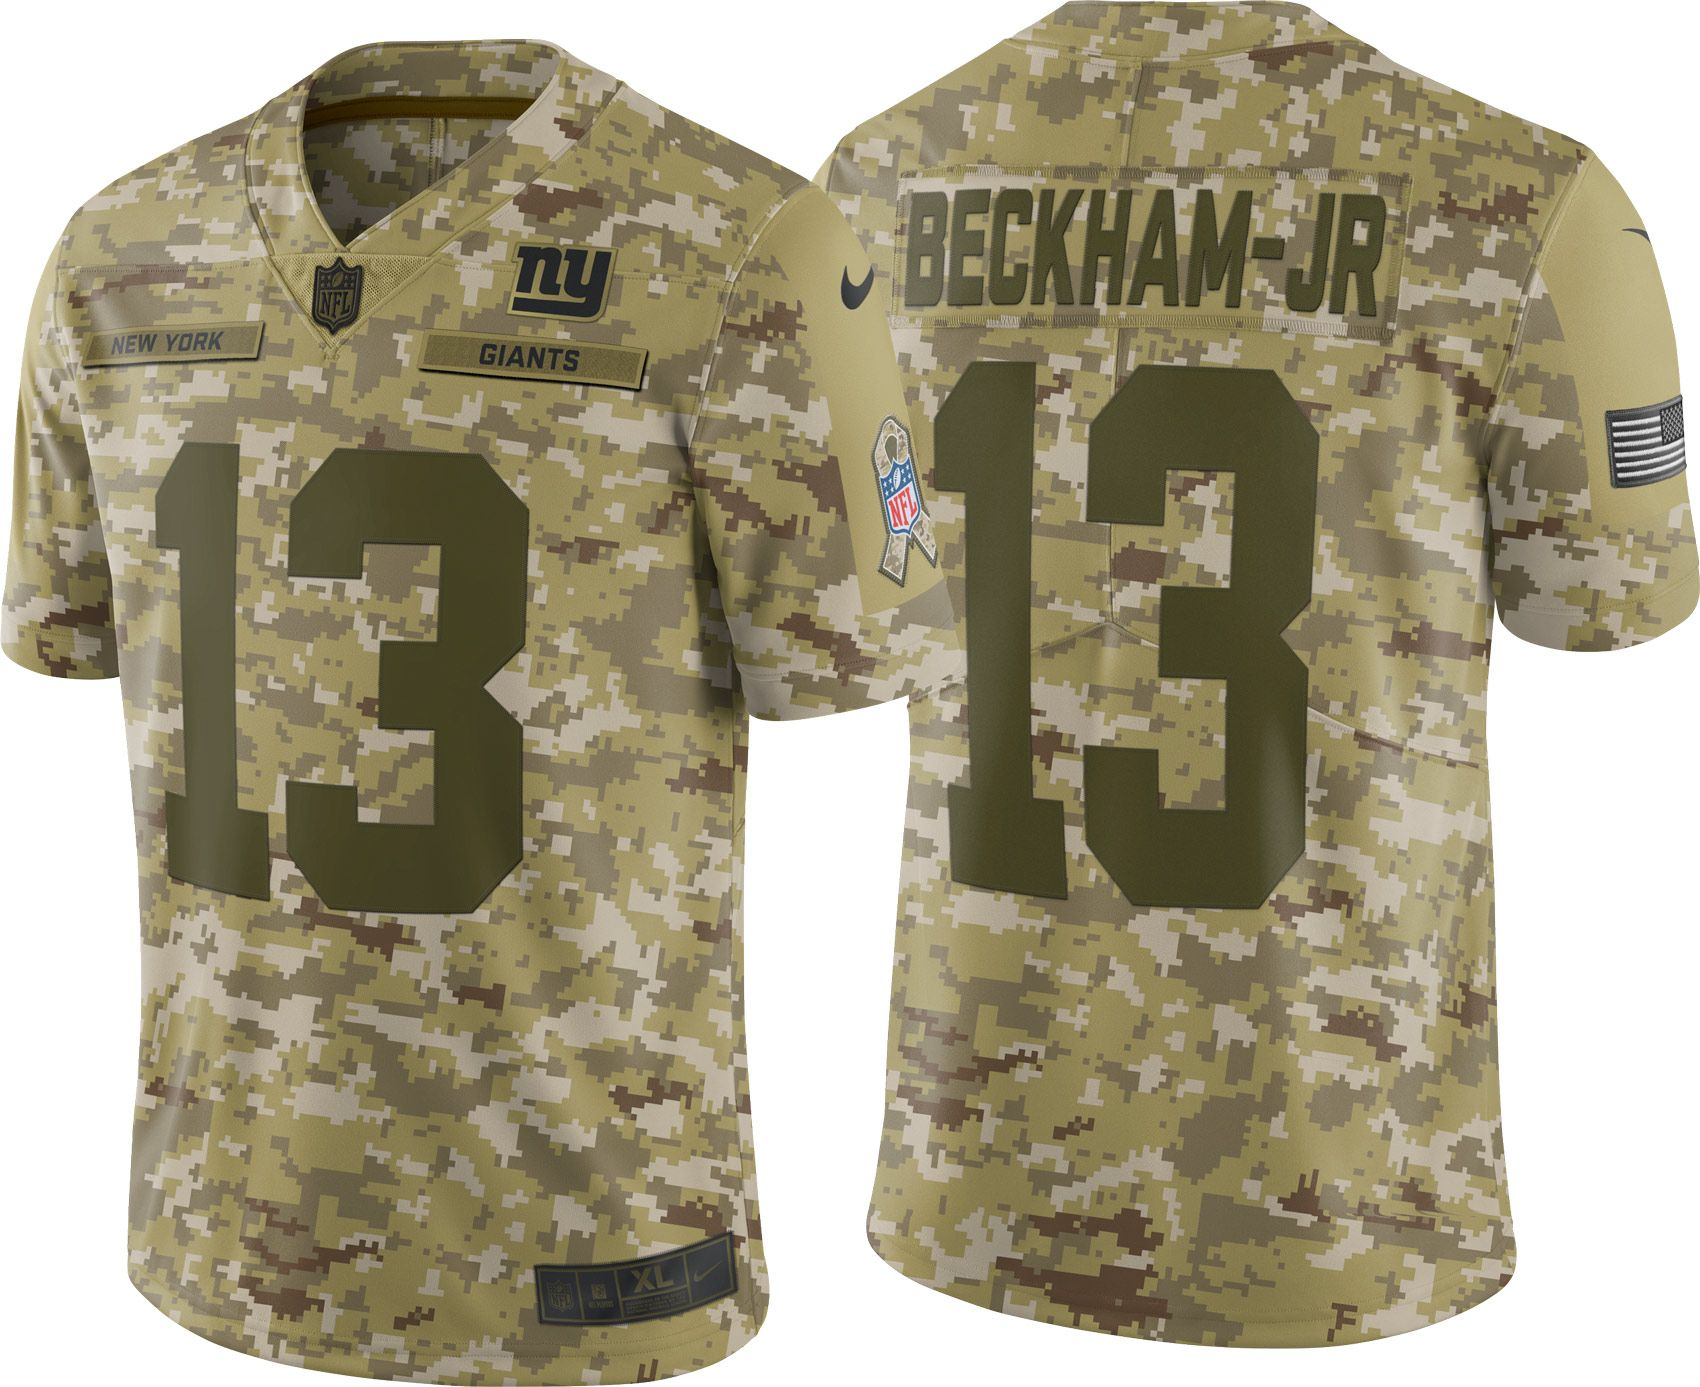 official photos 8c810 0f2b1 Military Beckham Odell Jersey Jr piety.byronrabe.com